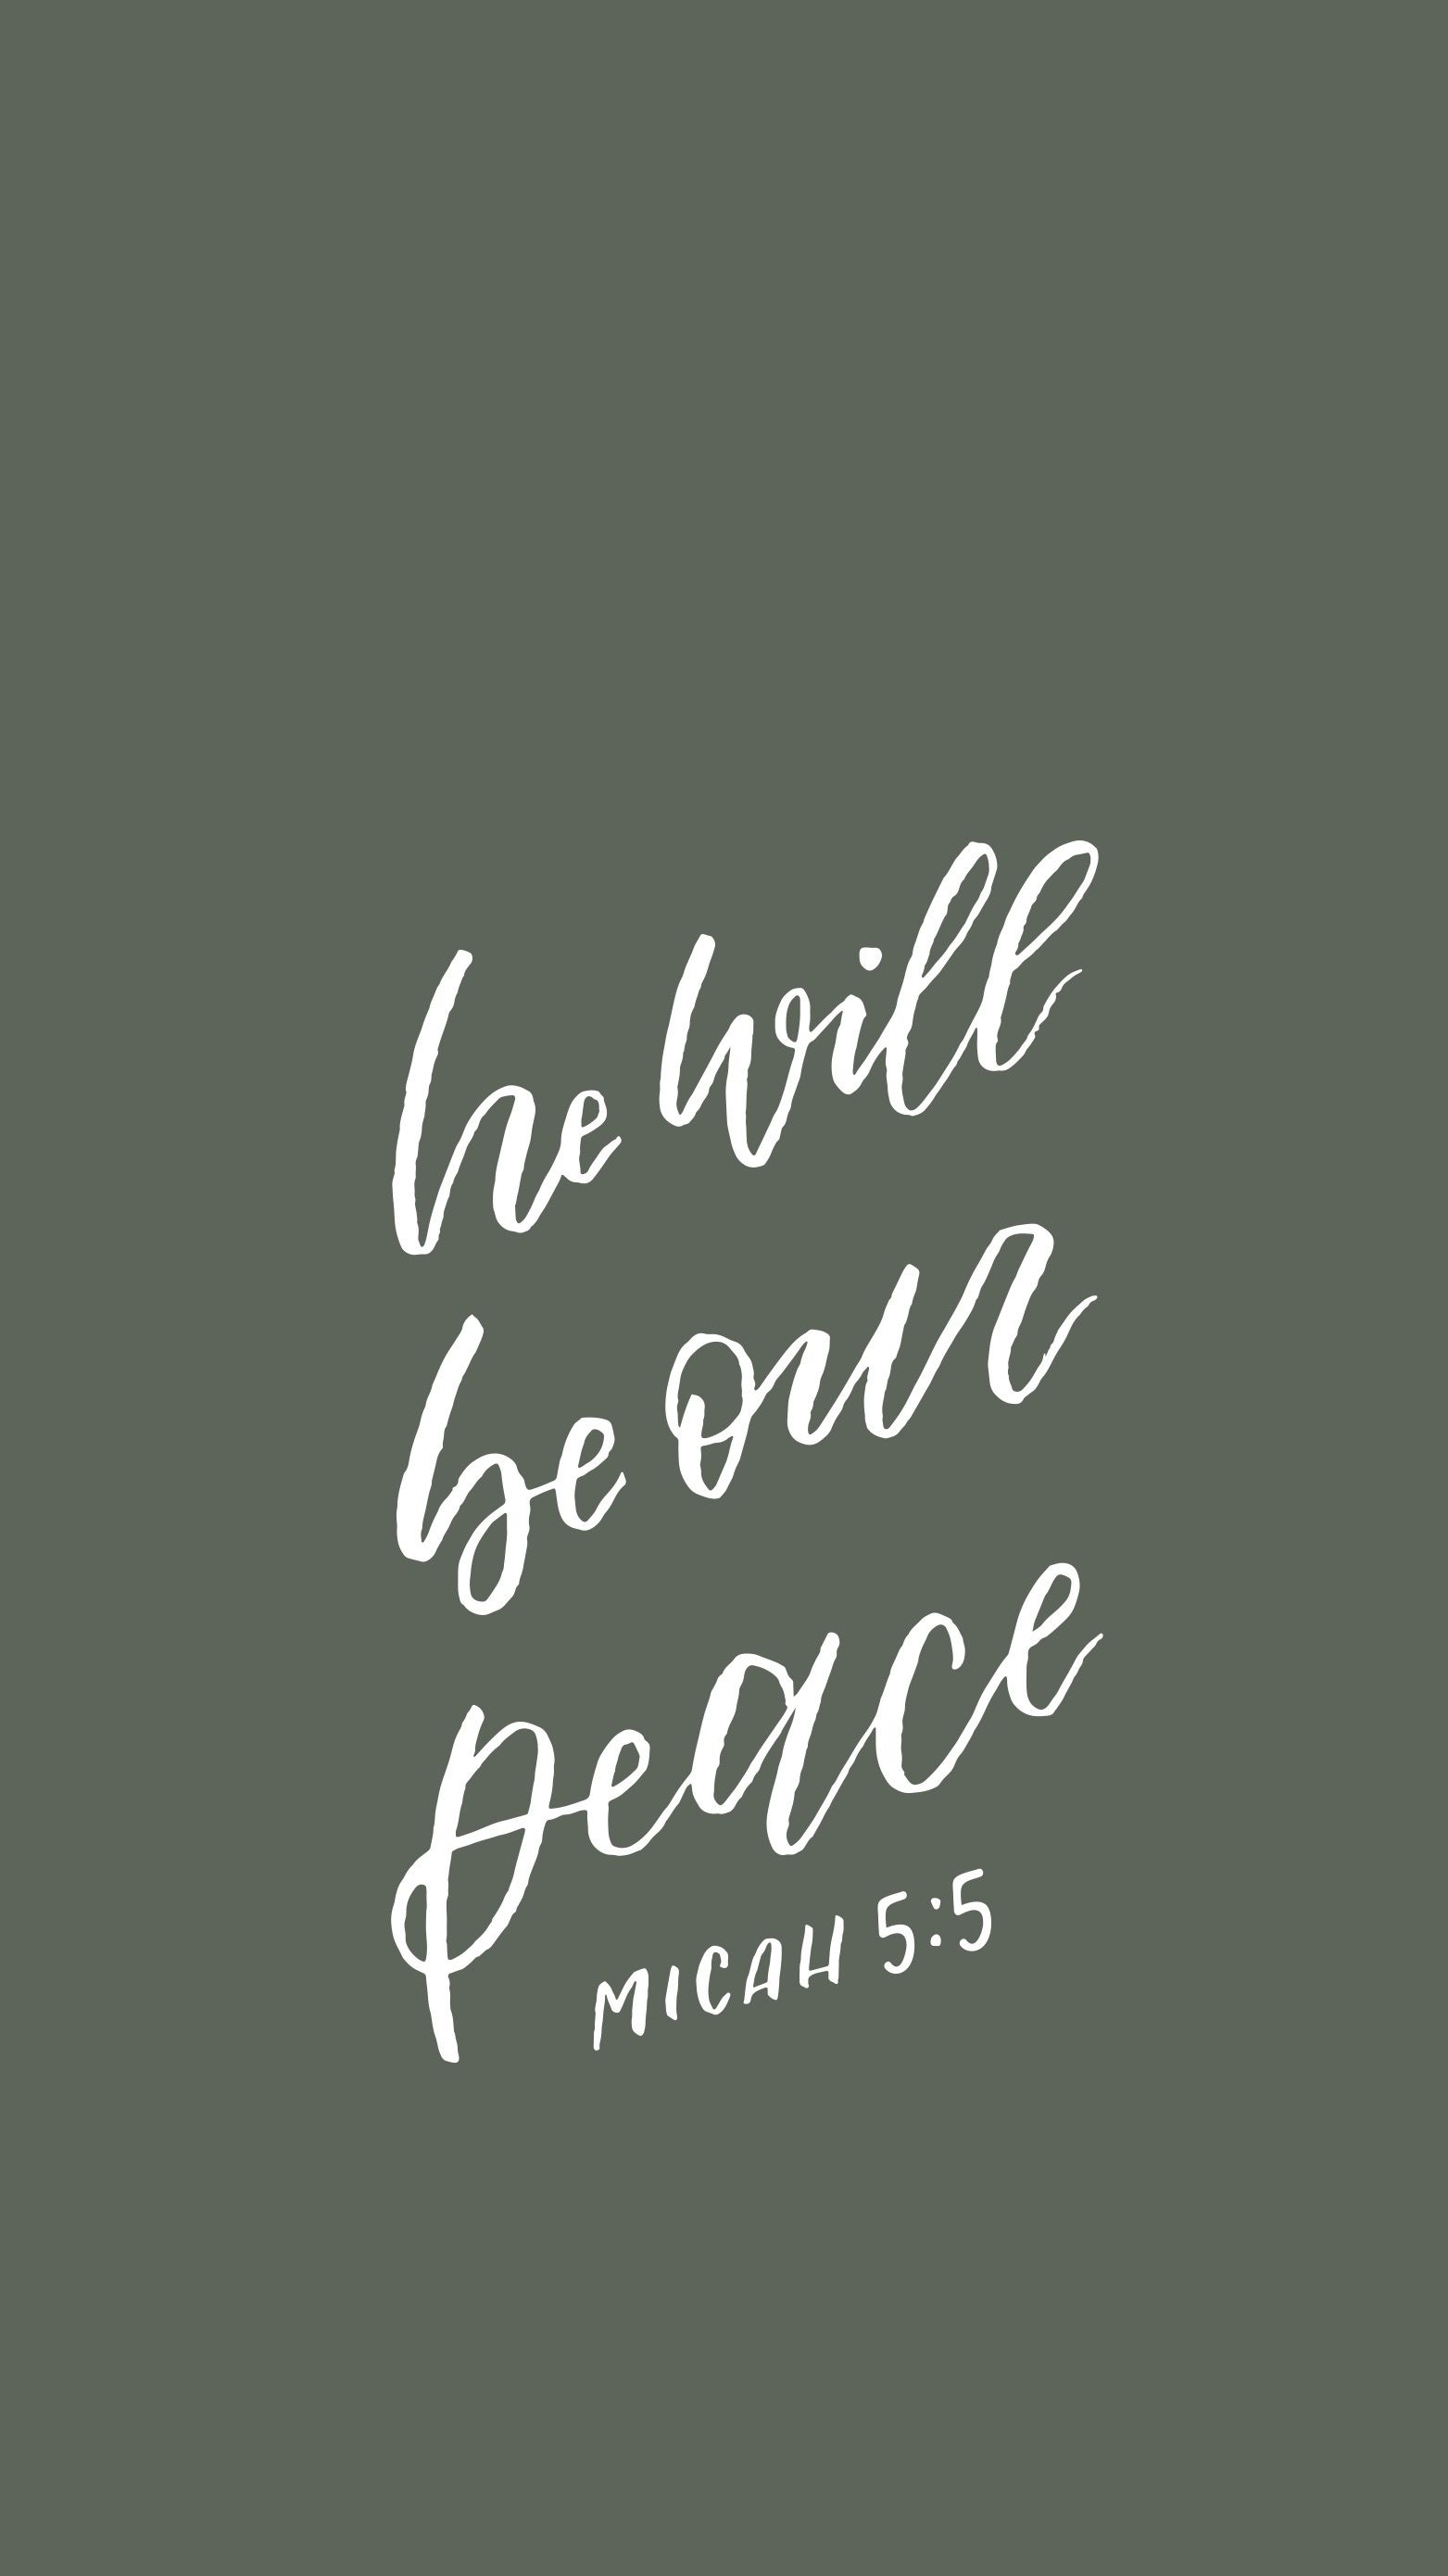 He Will Be Our Peace Wallpaper Bible Verse Wallpaper Wise Words